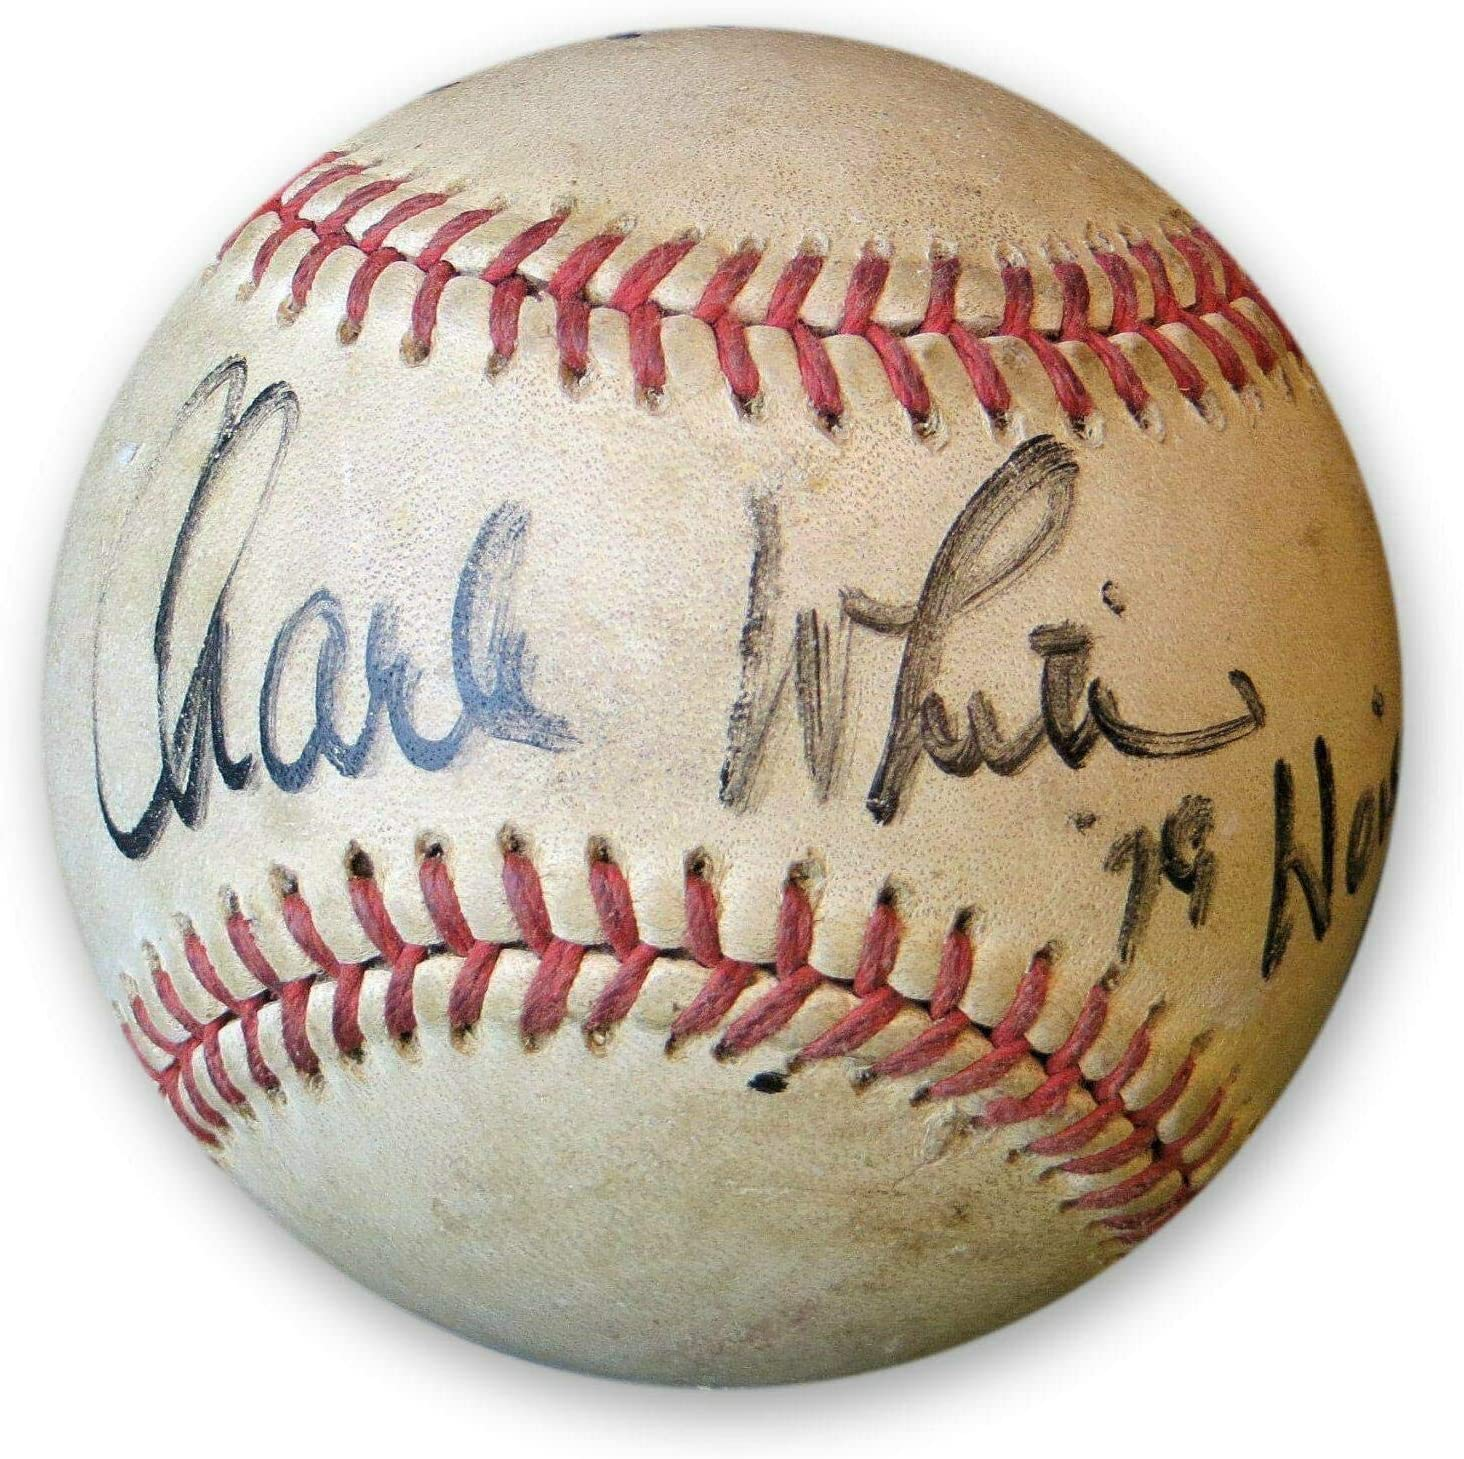 Charles White Manny Mota Rod Martin Signed Autographed Baseball JSA T48956 - NFL Autographed Miscellaneous Items